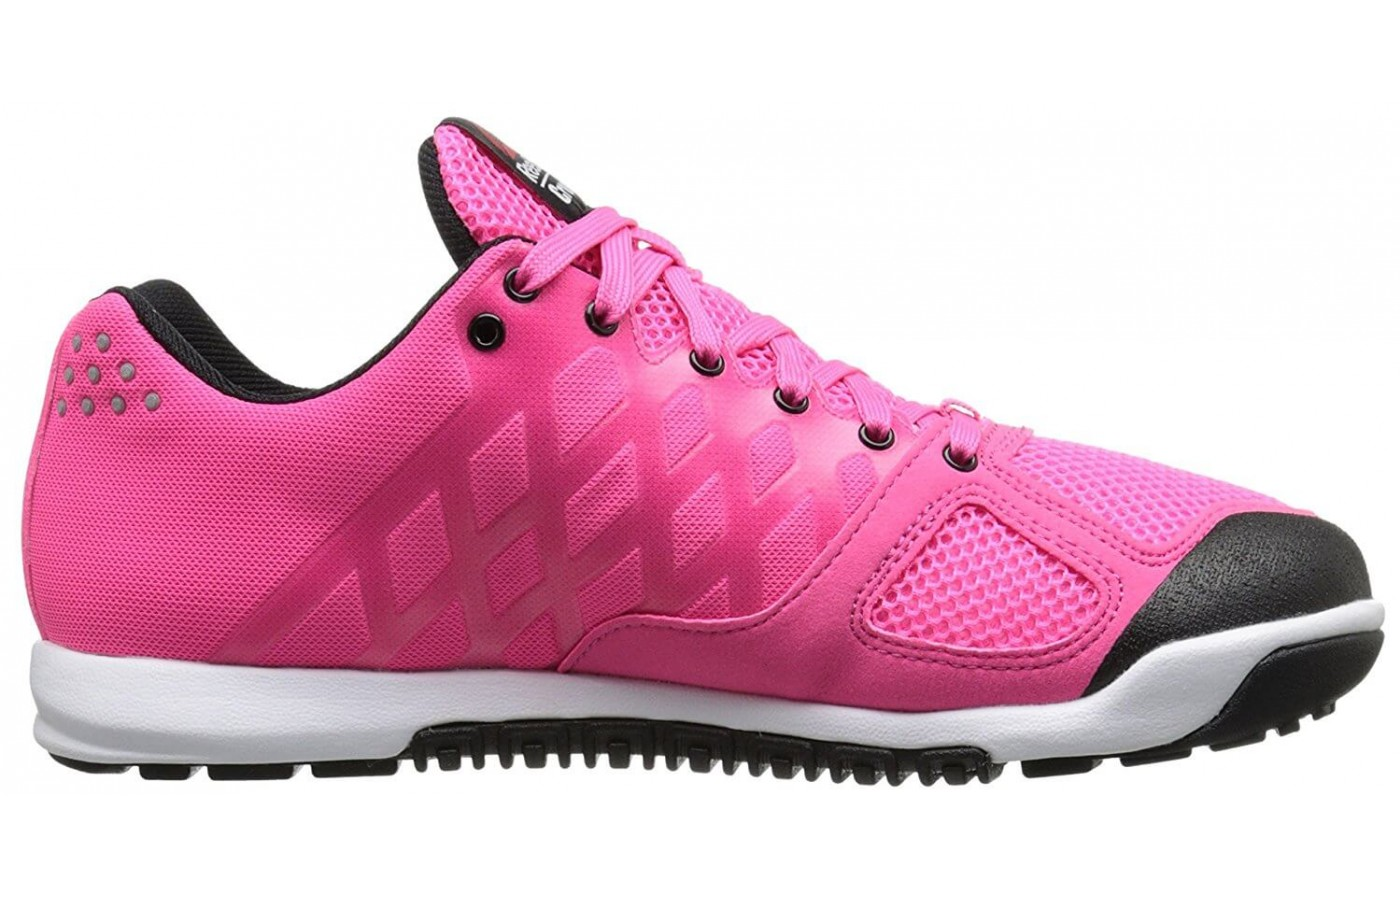 The Reebok CrossFit Nano 2.0 features a 3D Fuse Frame for support